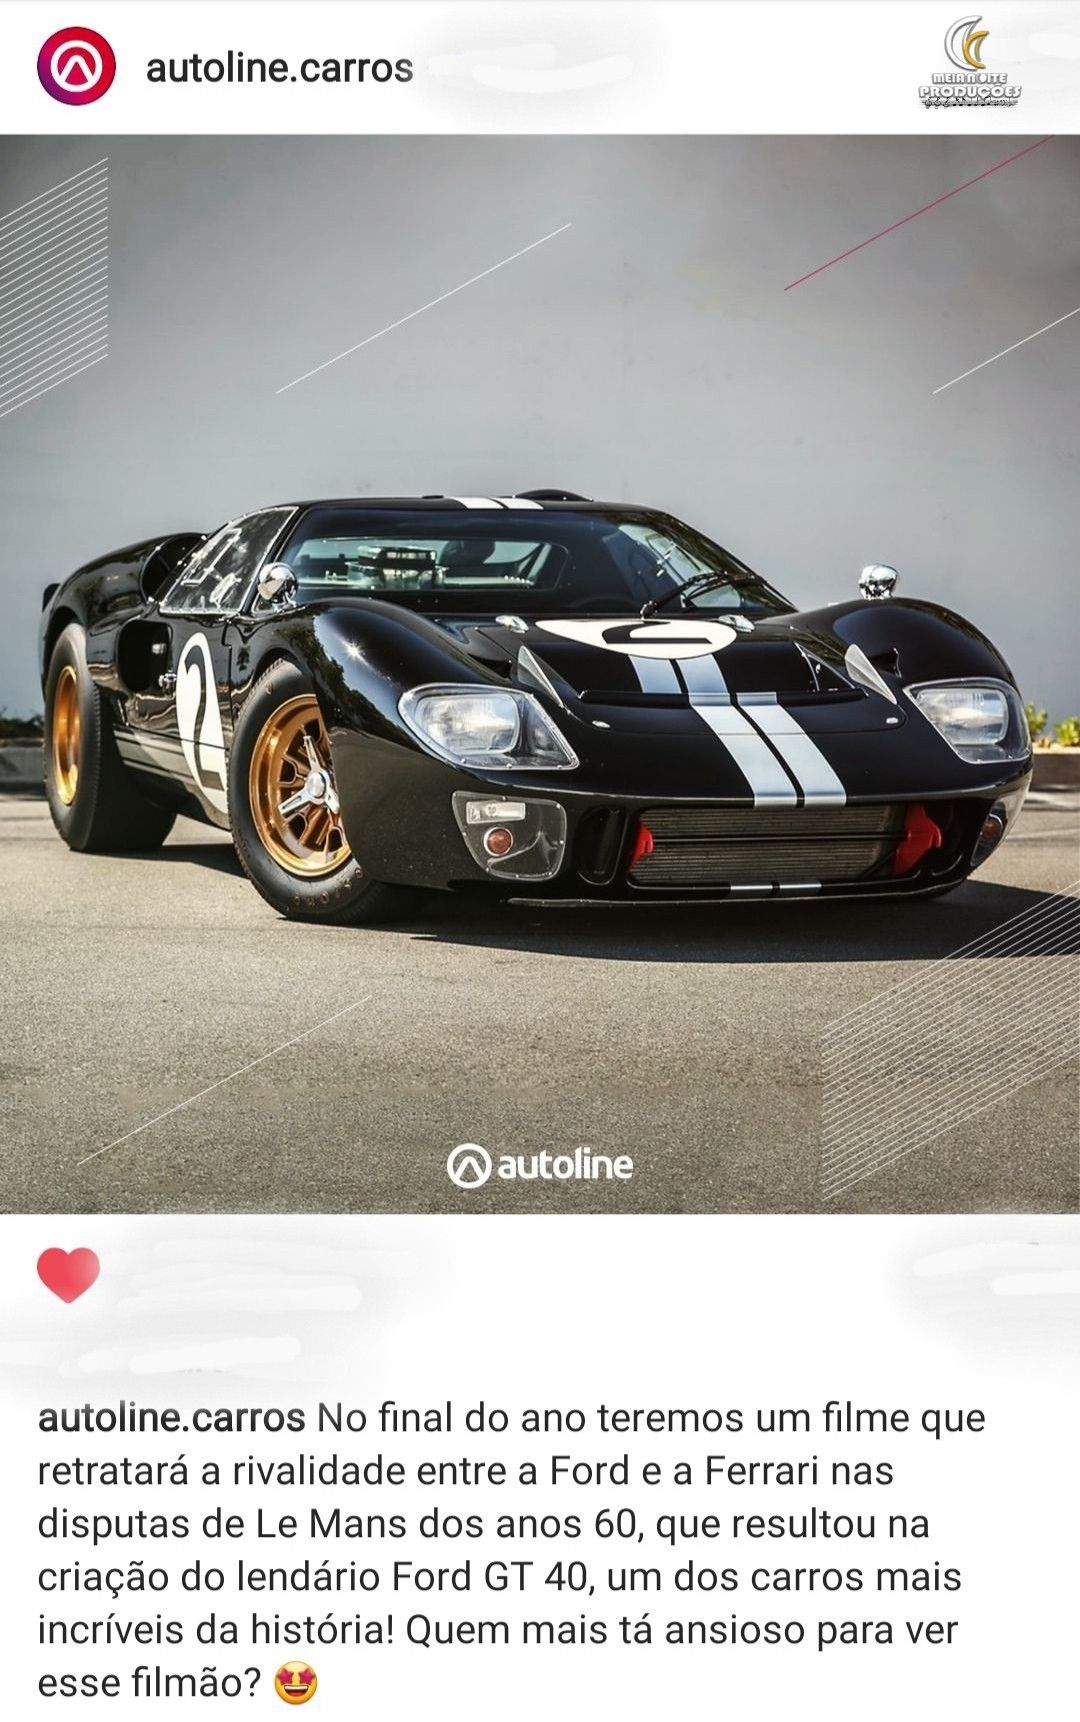 Cars Carros Ford Gt Ford Carros